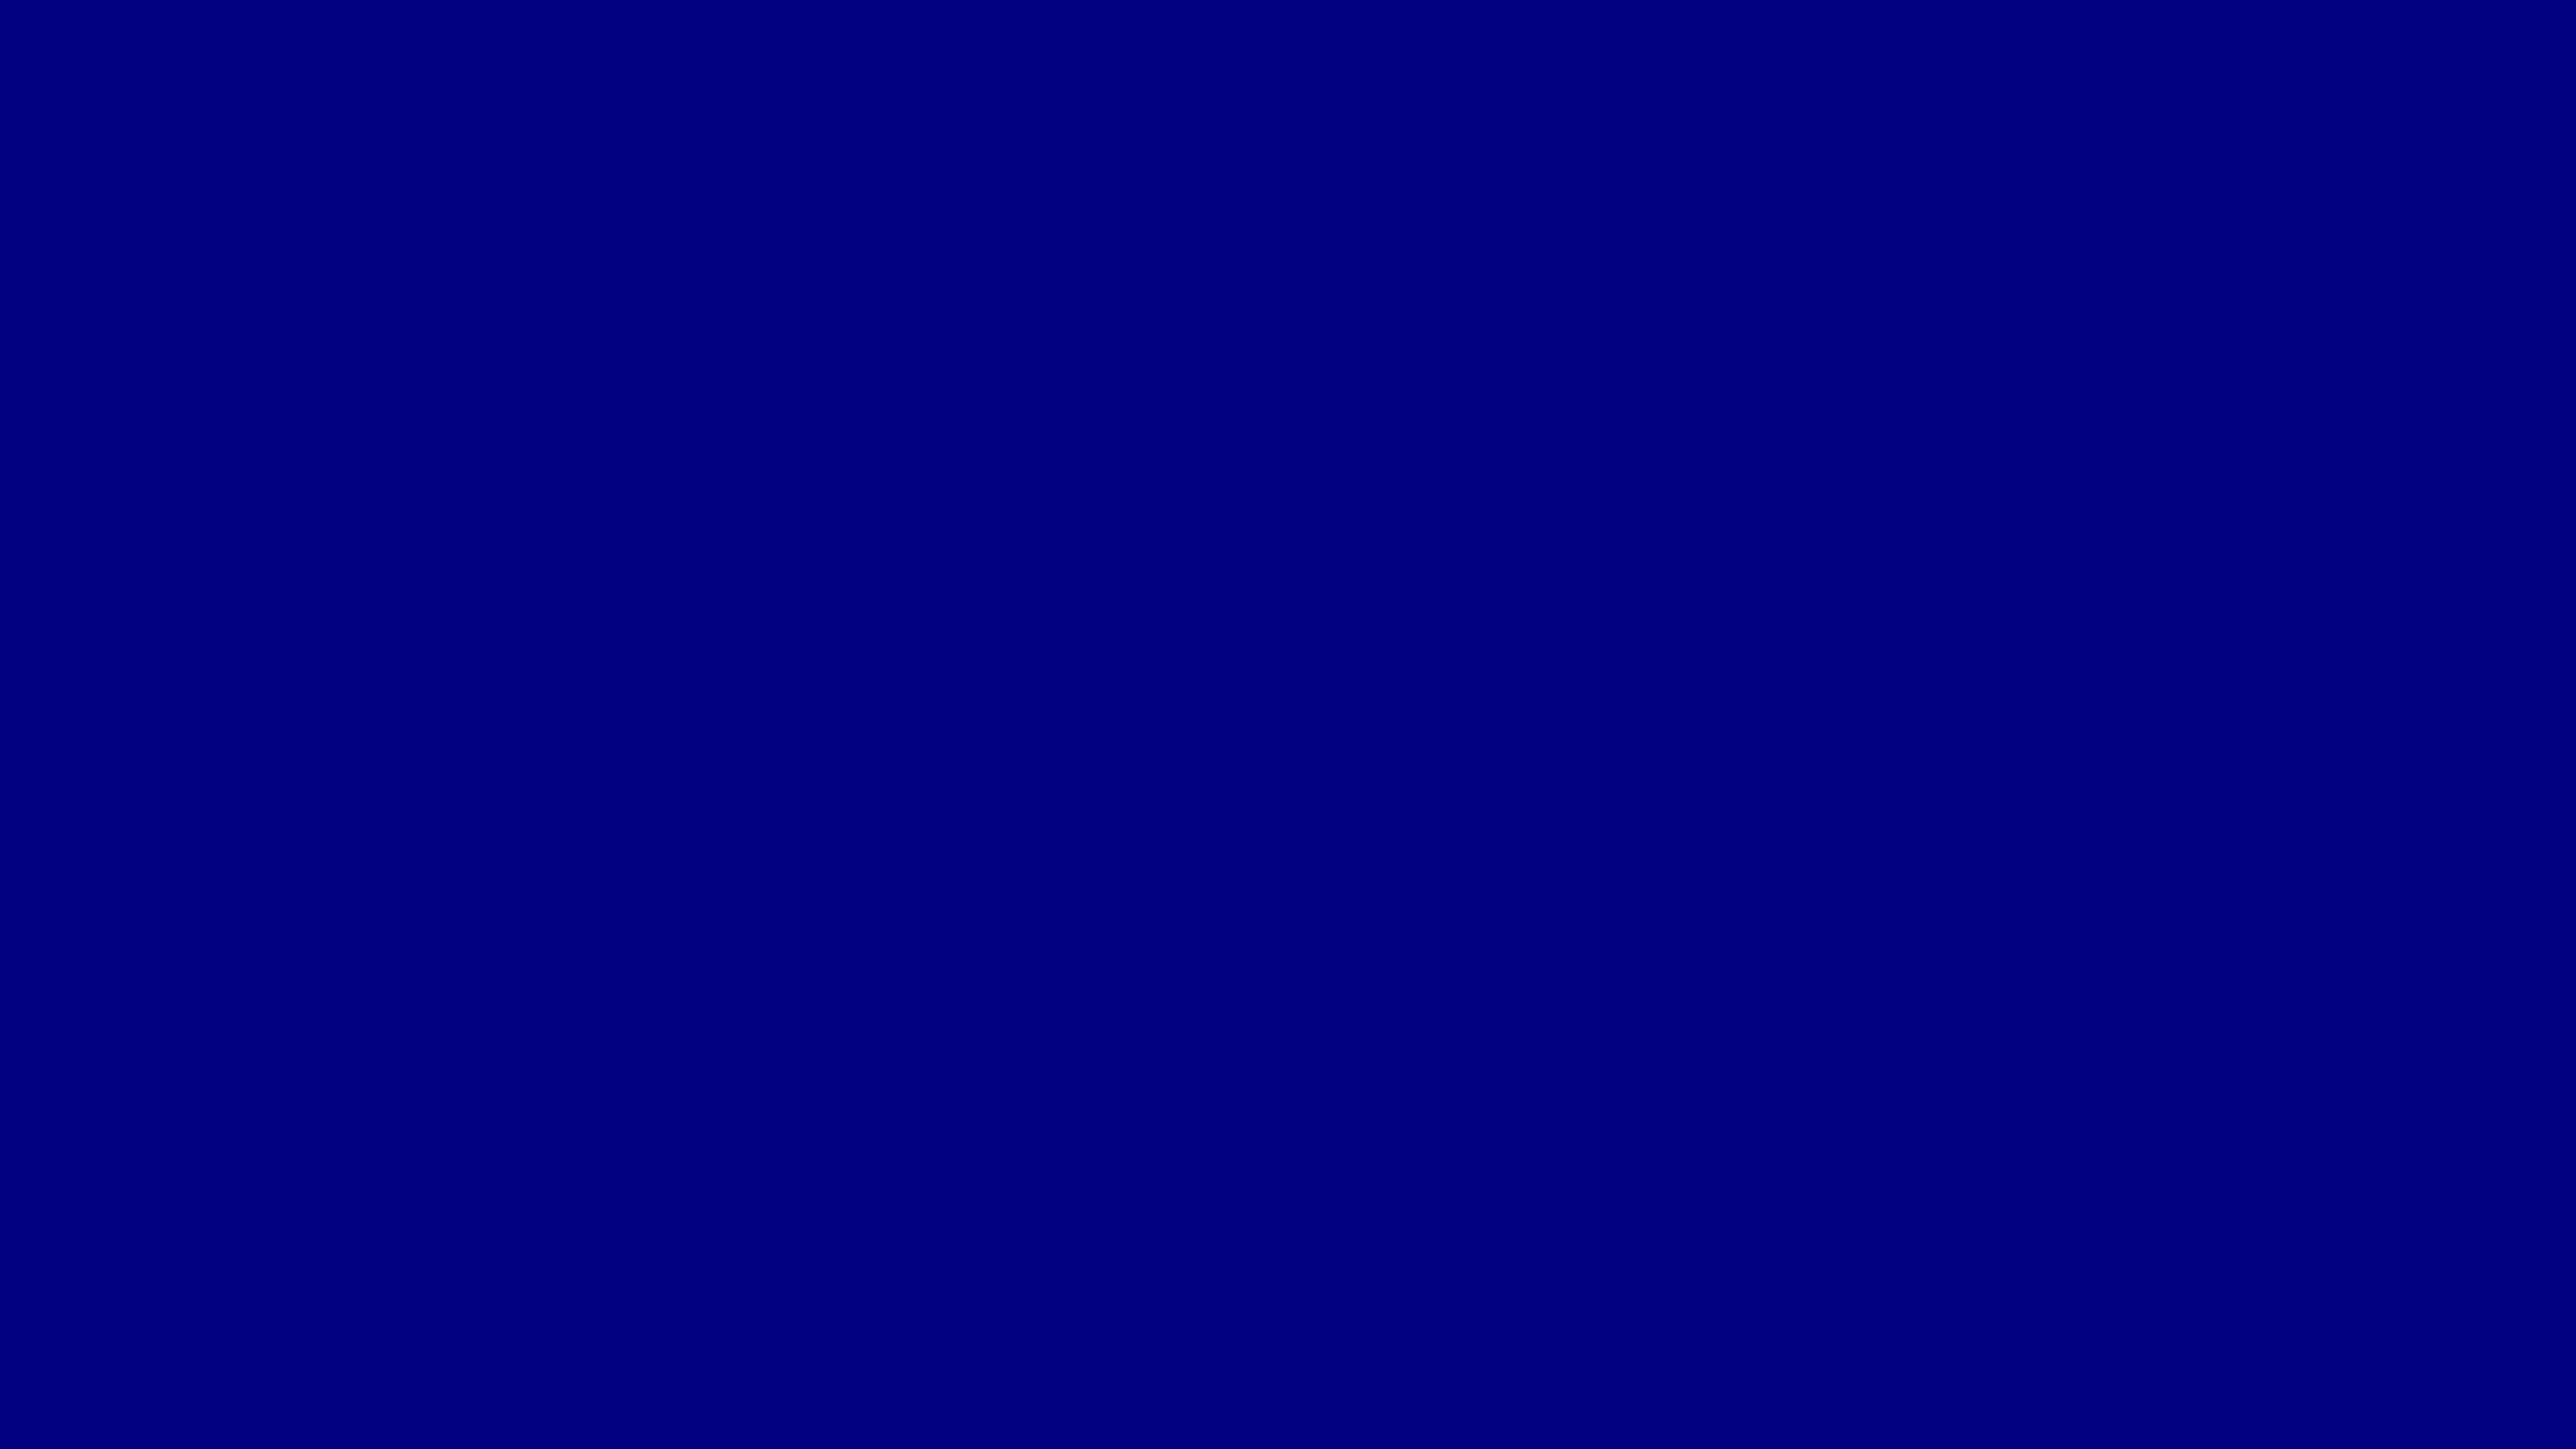 4096x2304 Navy Blue Solid Color Background